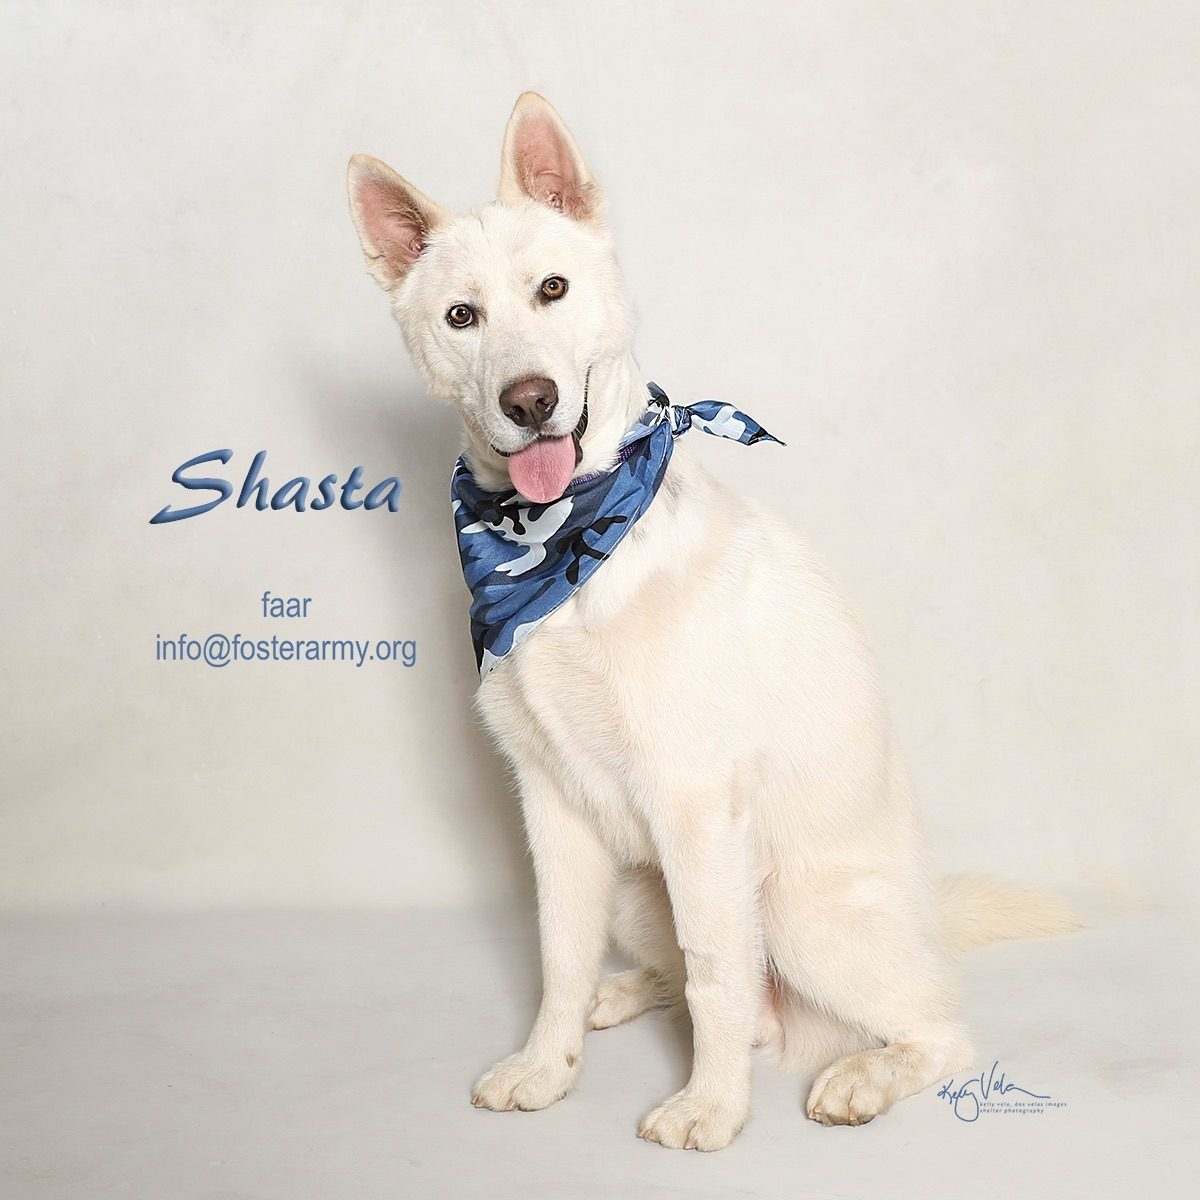 Adopt Shasta, the worlds luckiest dog with Foster Army Animal Rescue in Riverside, CA